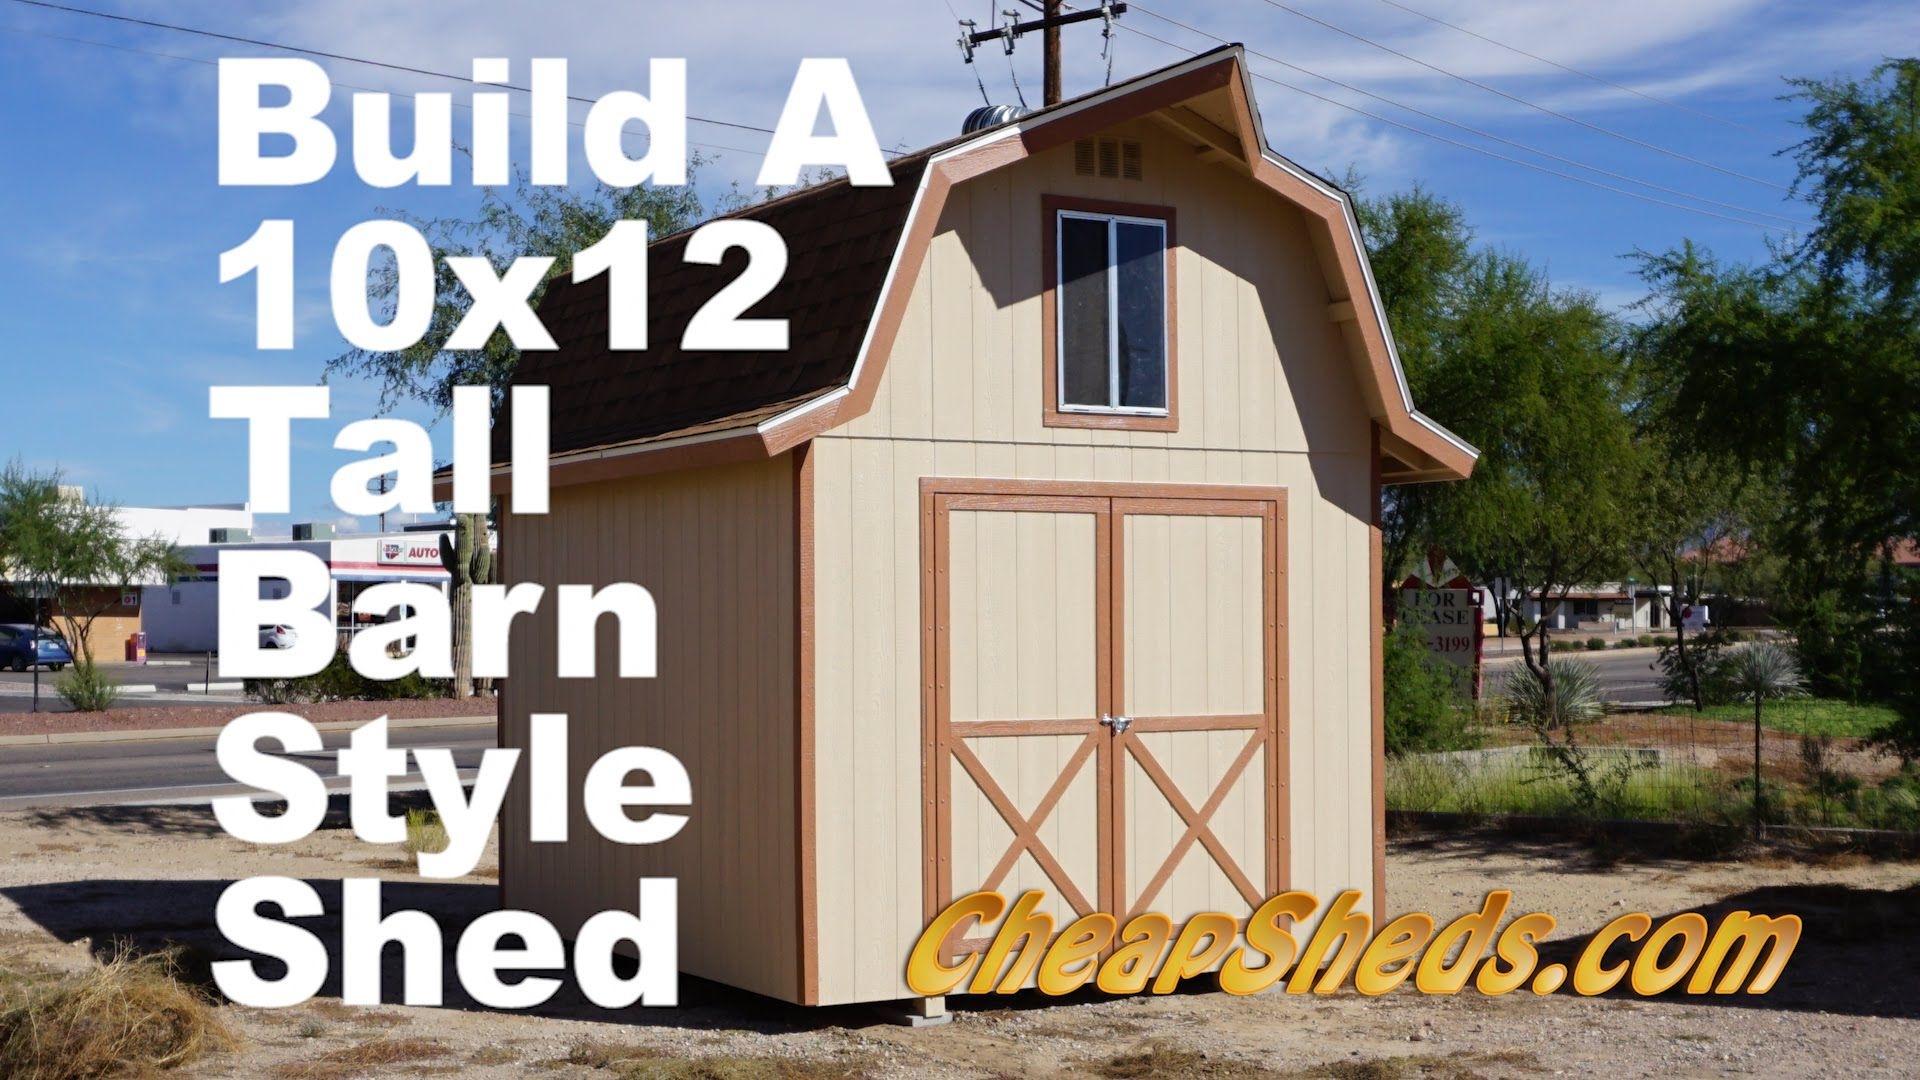 Build A 10x12 Tall Barn Style Shed With Loft Shed Building A Shed Barn Style Shed